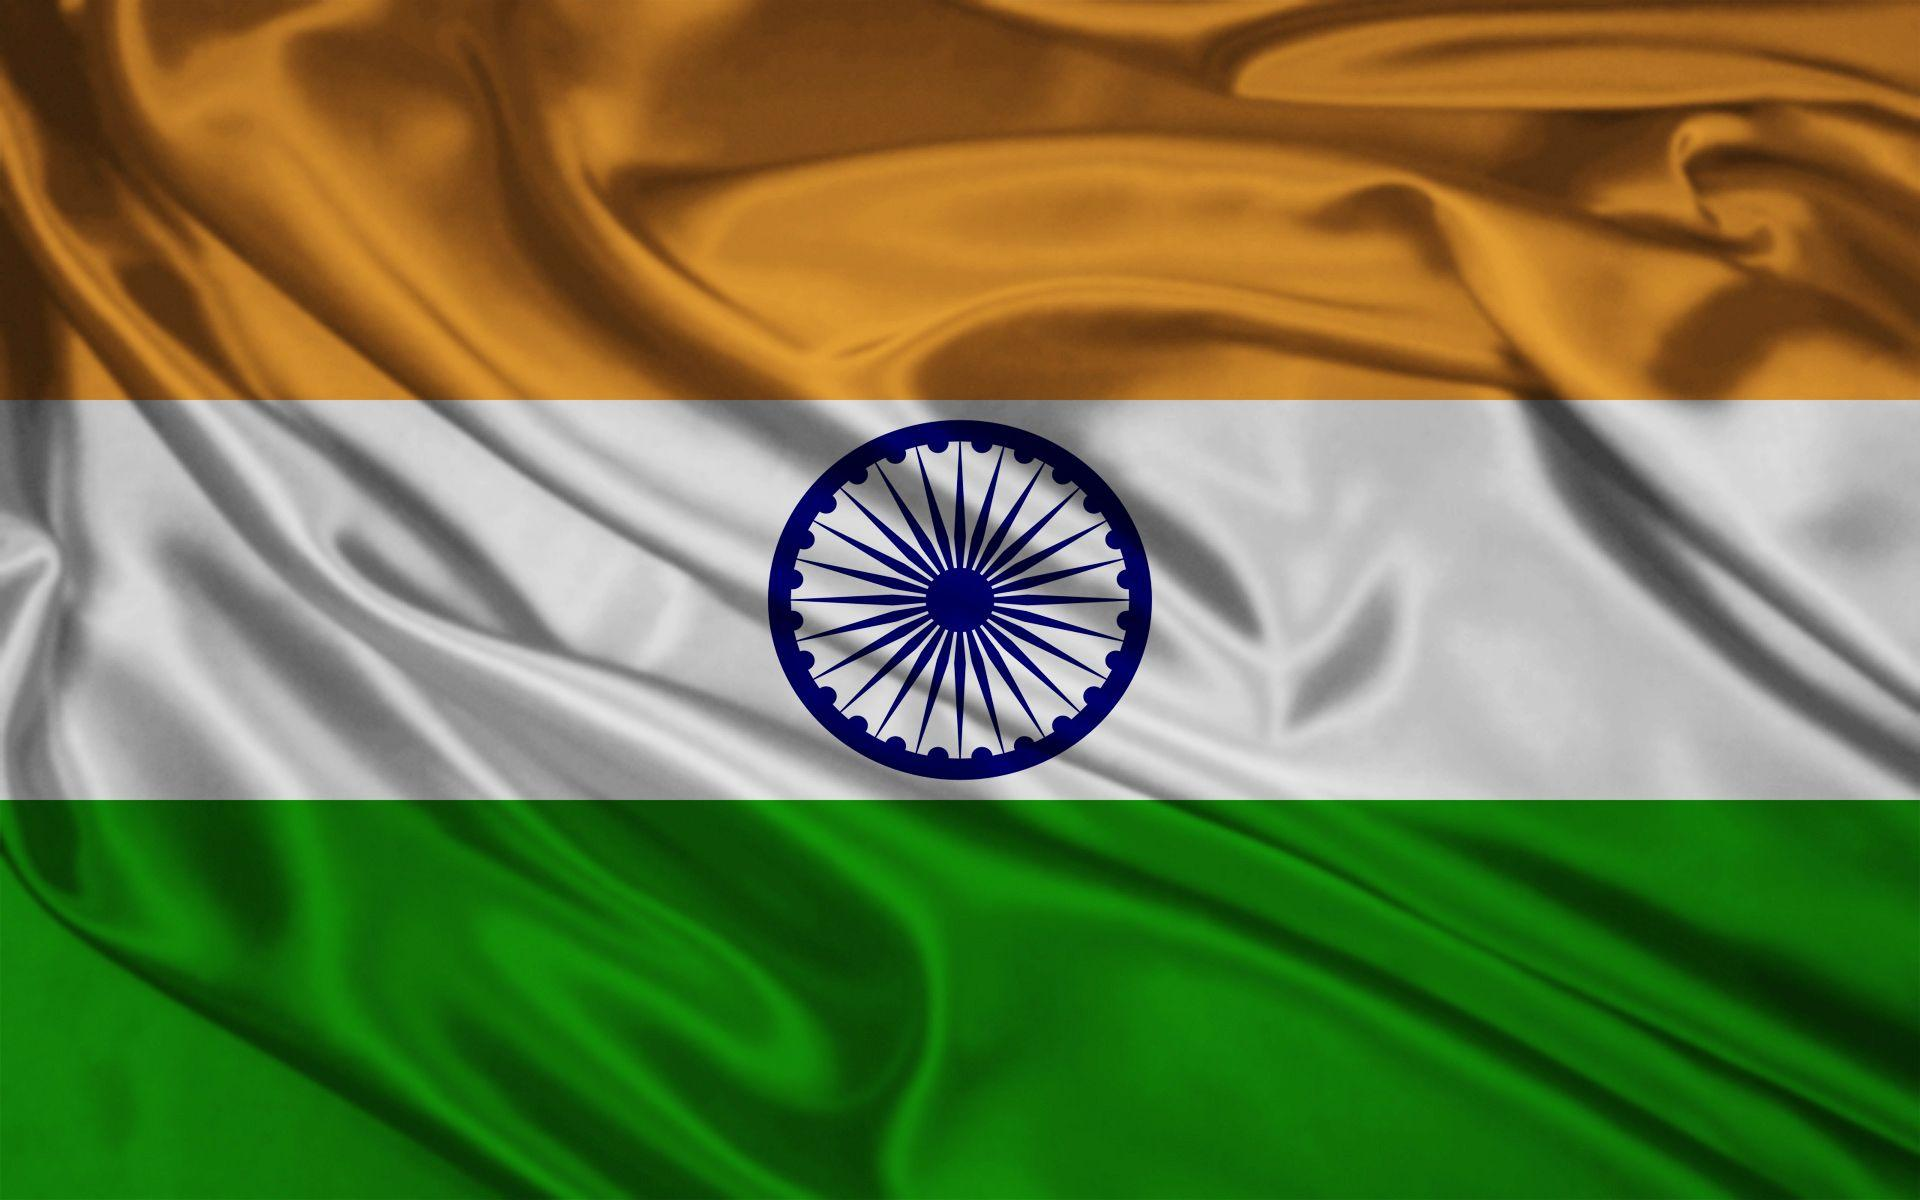 Indian Flag Images Hd720p: India Wallpapers Desktop